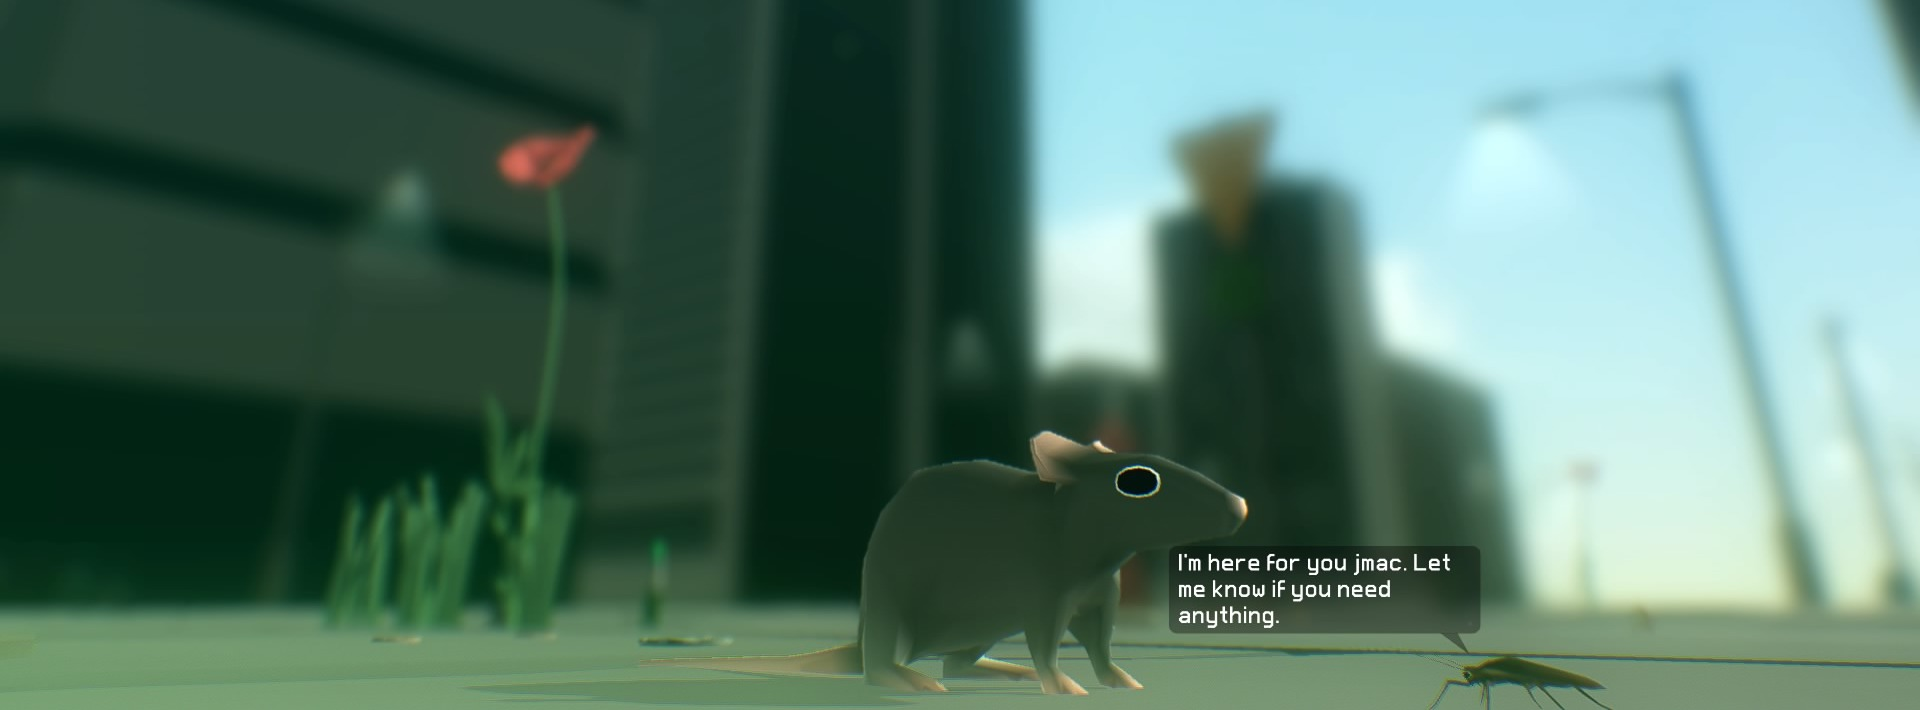 A screenshot from the video game 'Everything'. A roach says to a mouse 'I'm here for you, jmac. Let me know if you need anything.'